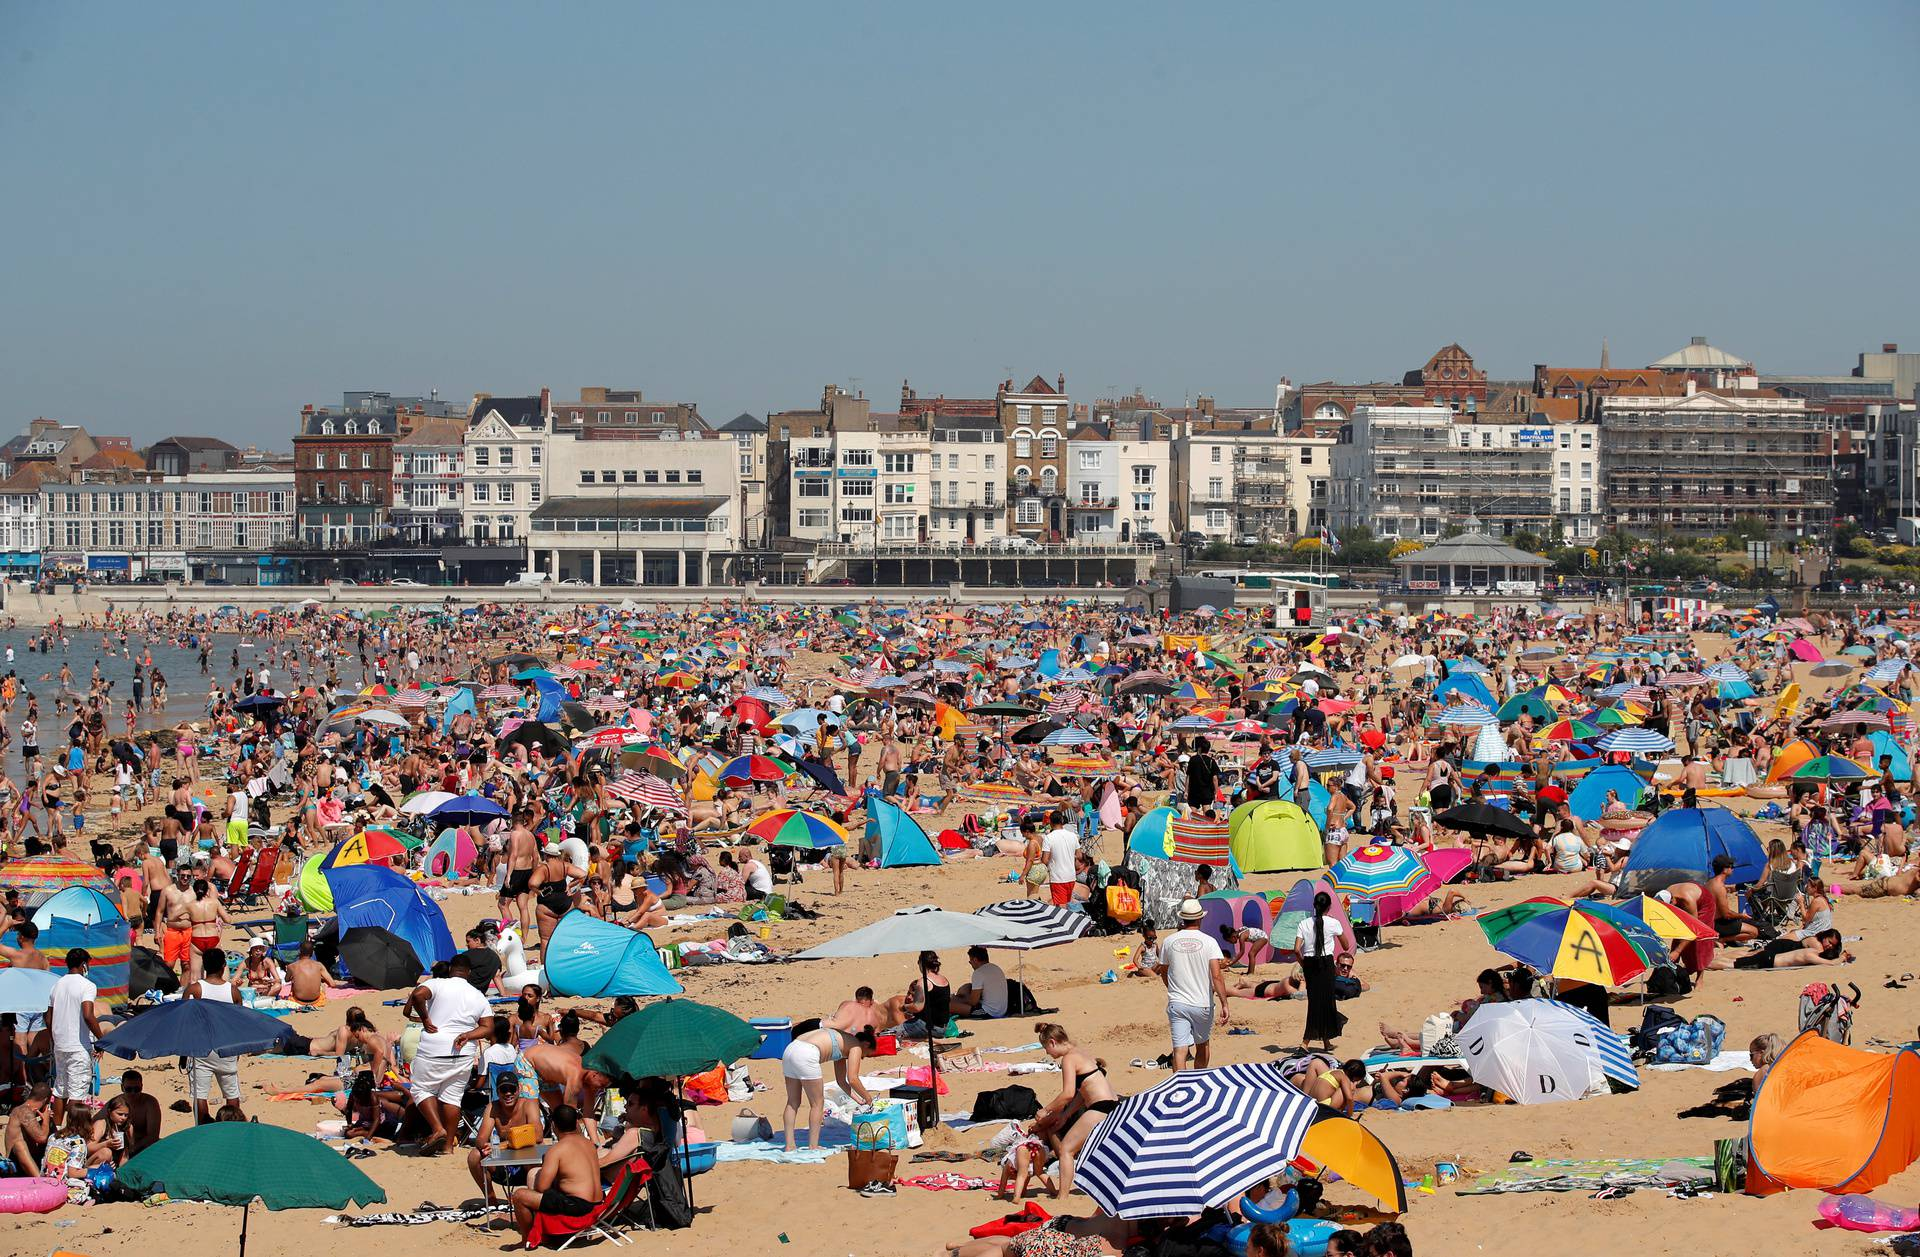 People enjoy the hot weather on Margate beach in Margate